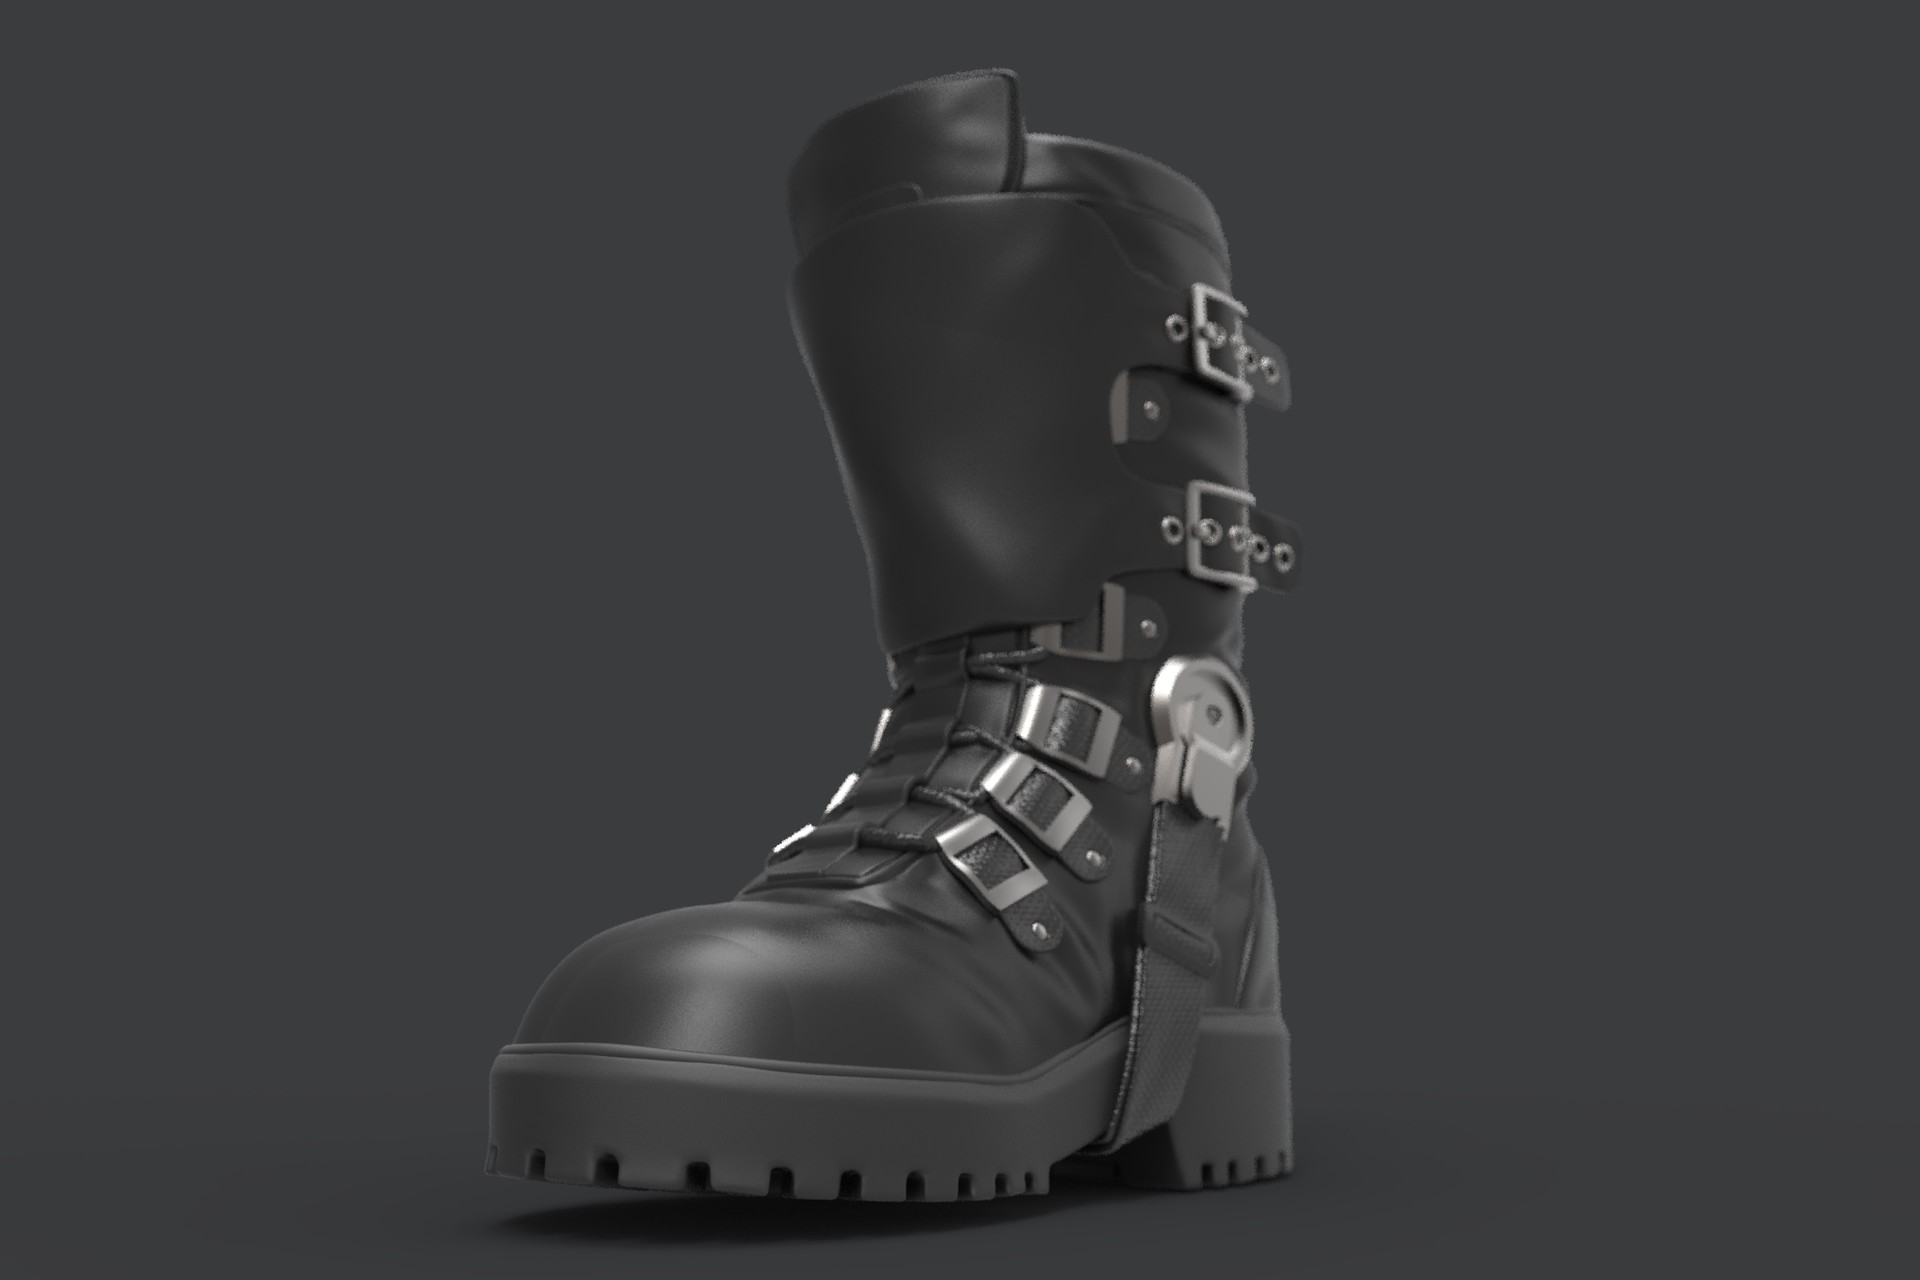 Shoes Boot _ Zbrush Tutorial _ by Michael Pavlovich Shoes Boot Shoes Boot